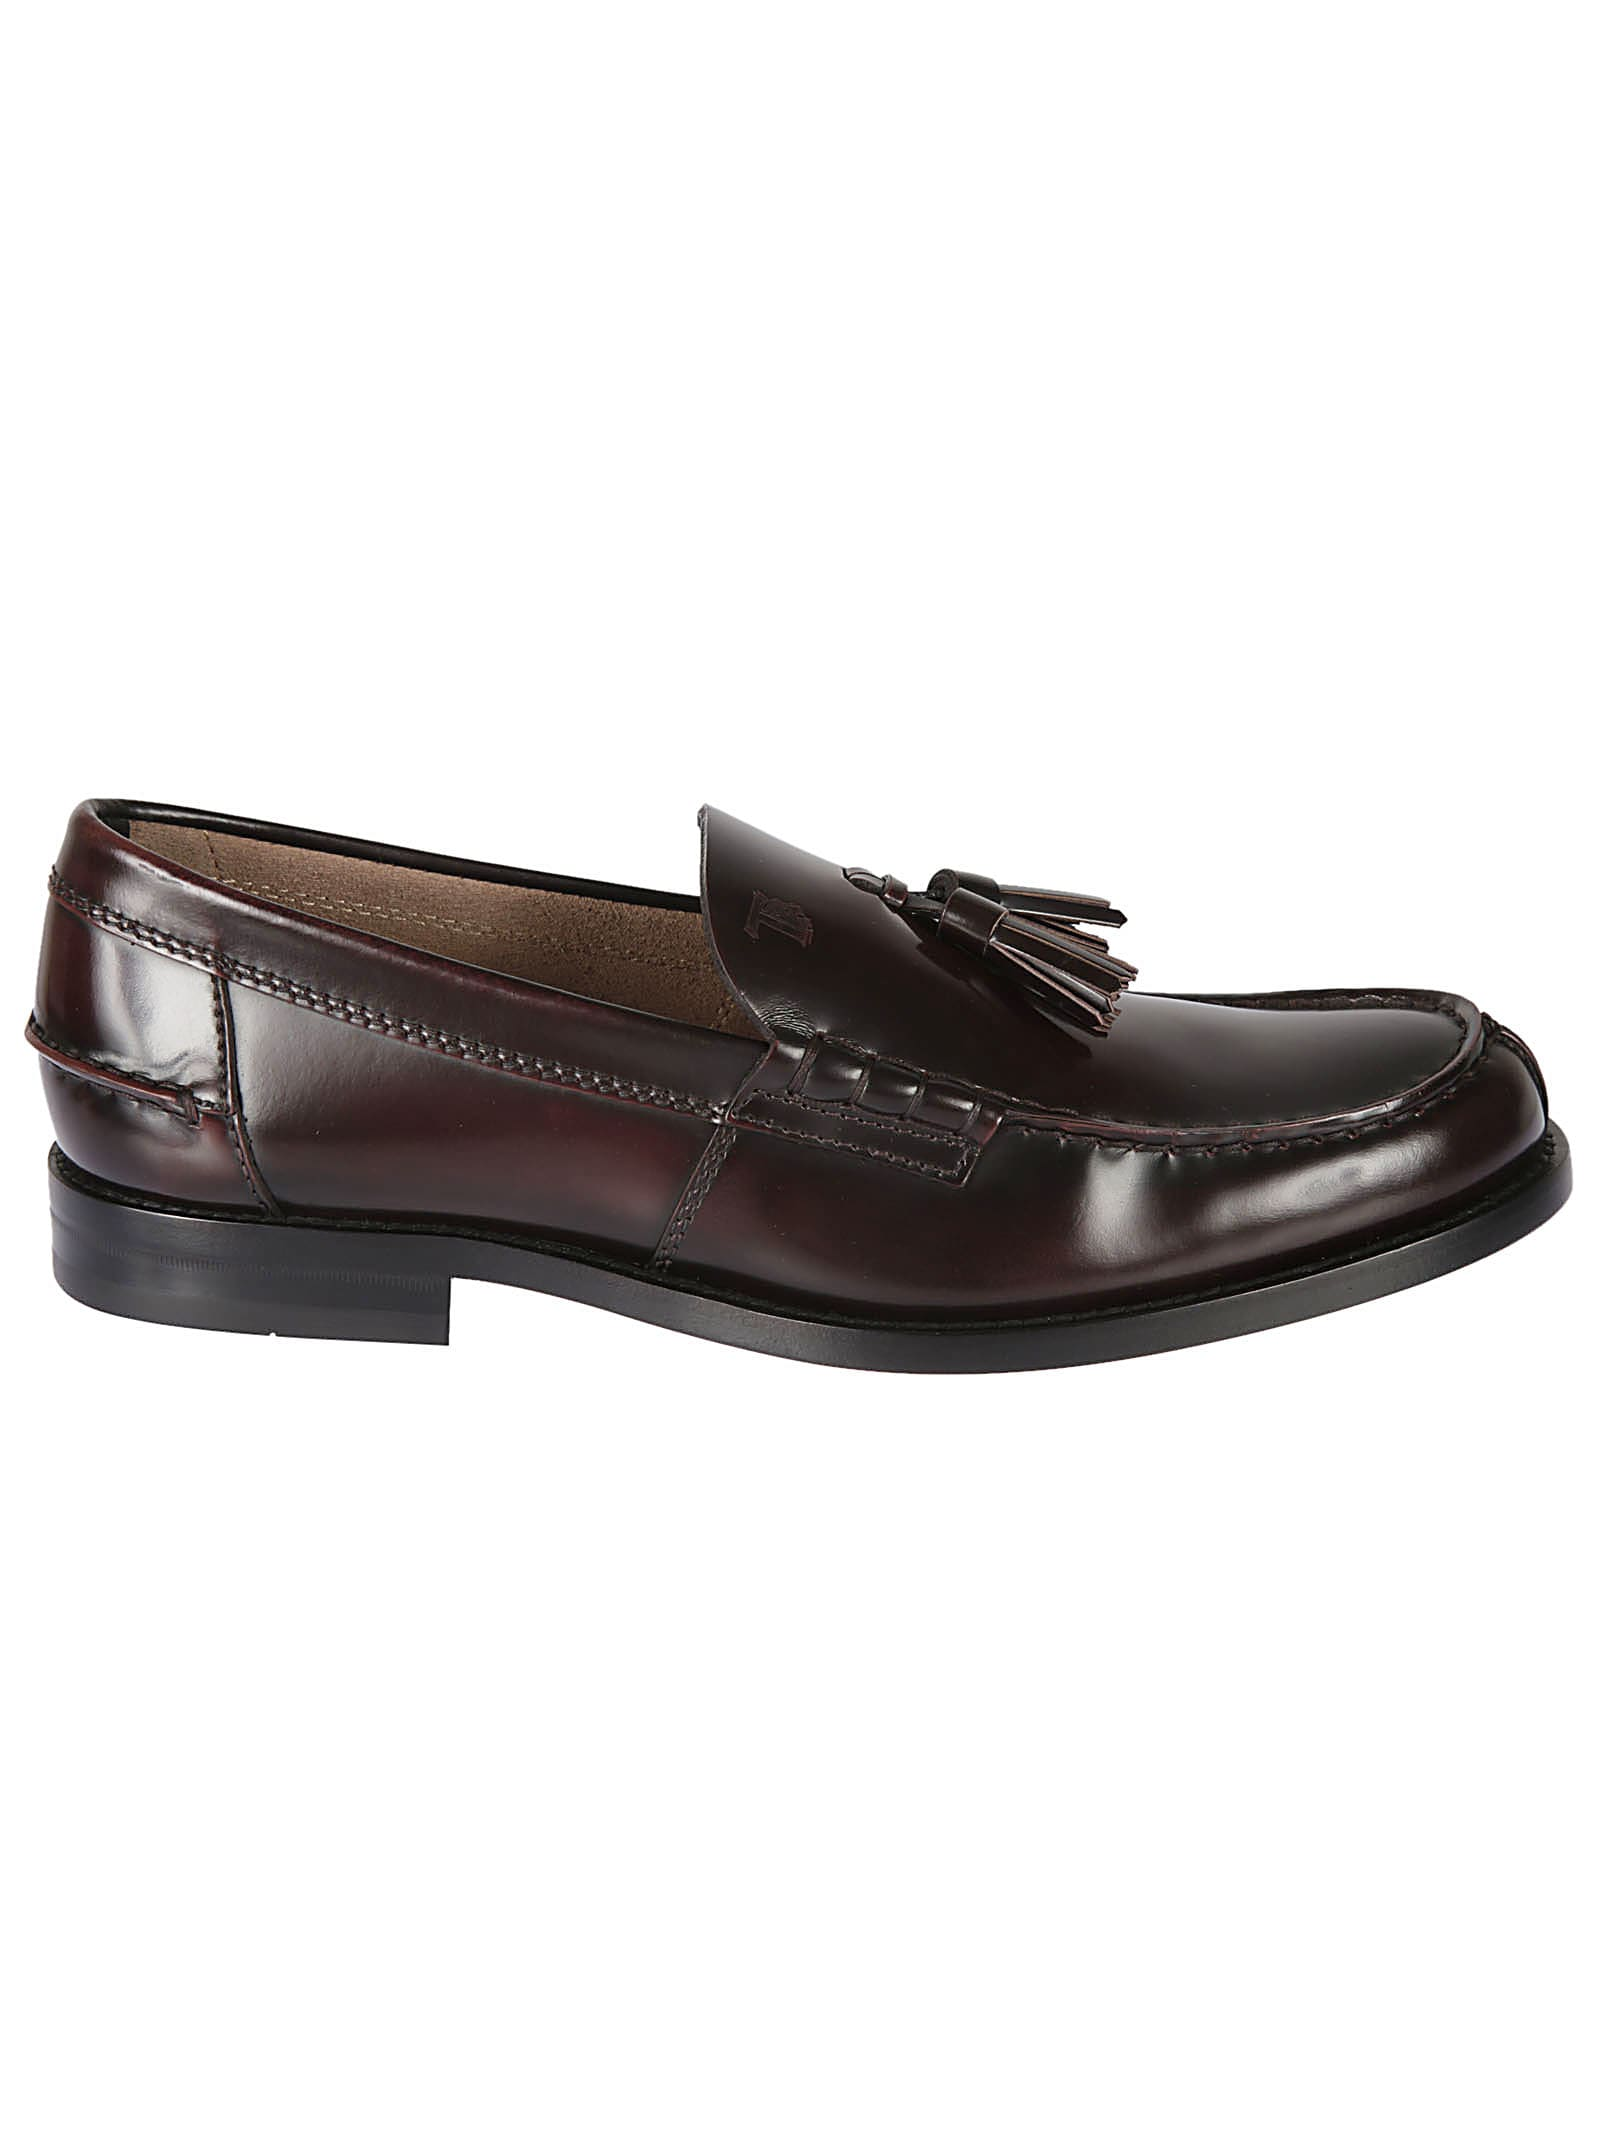 Tods Tassel Loafers